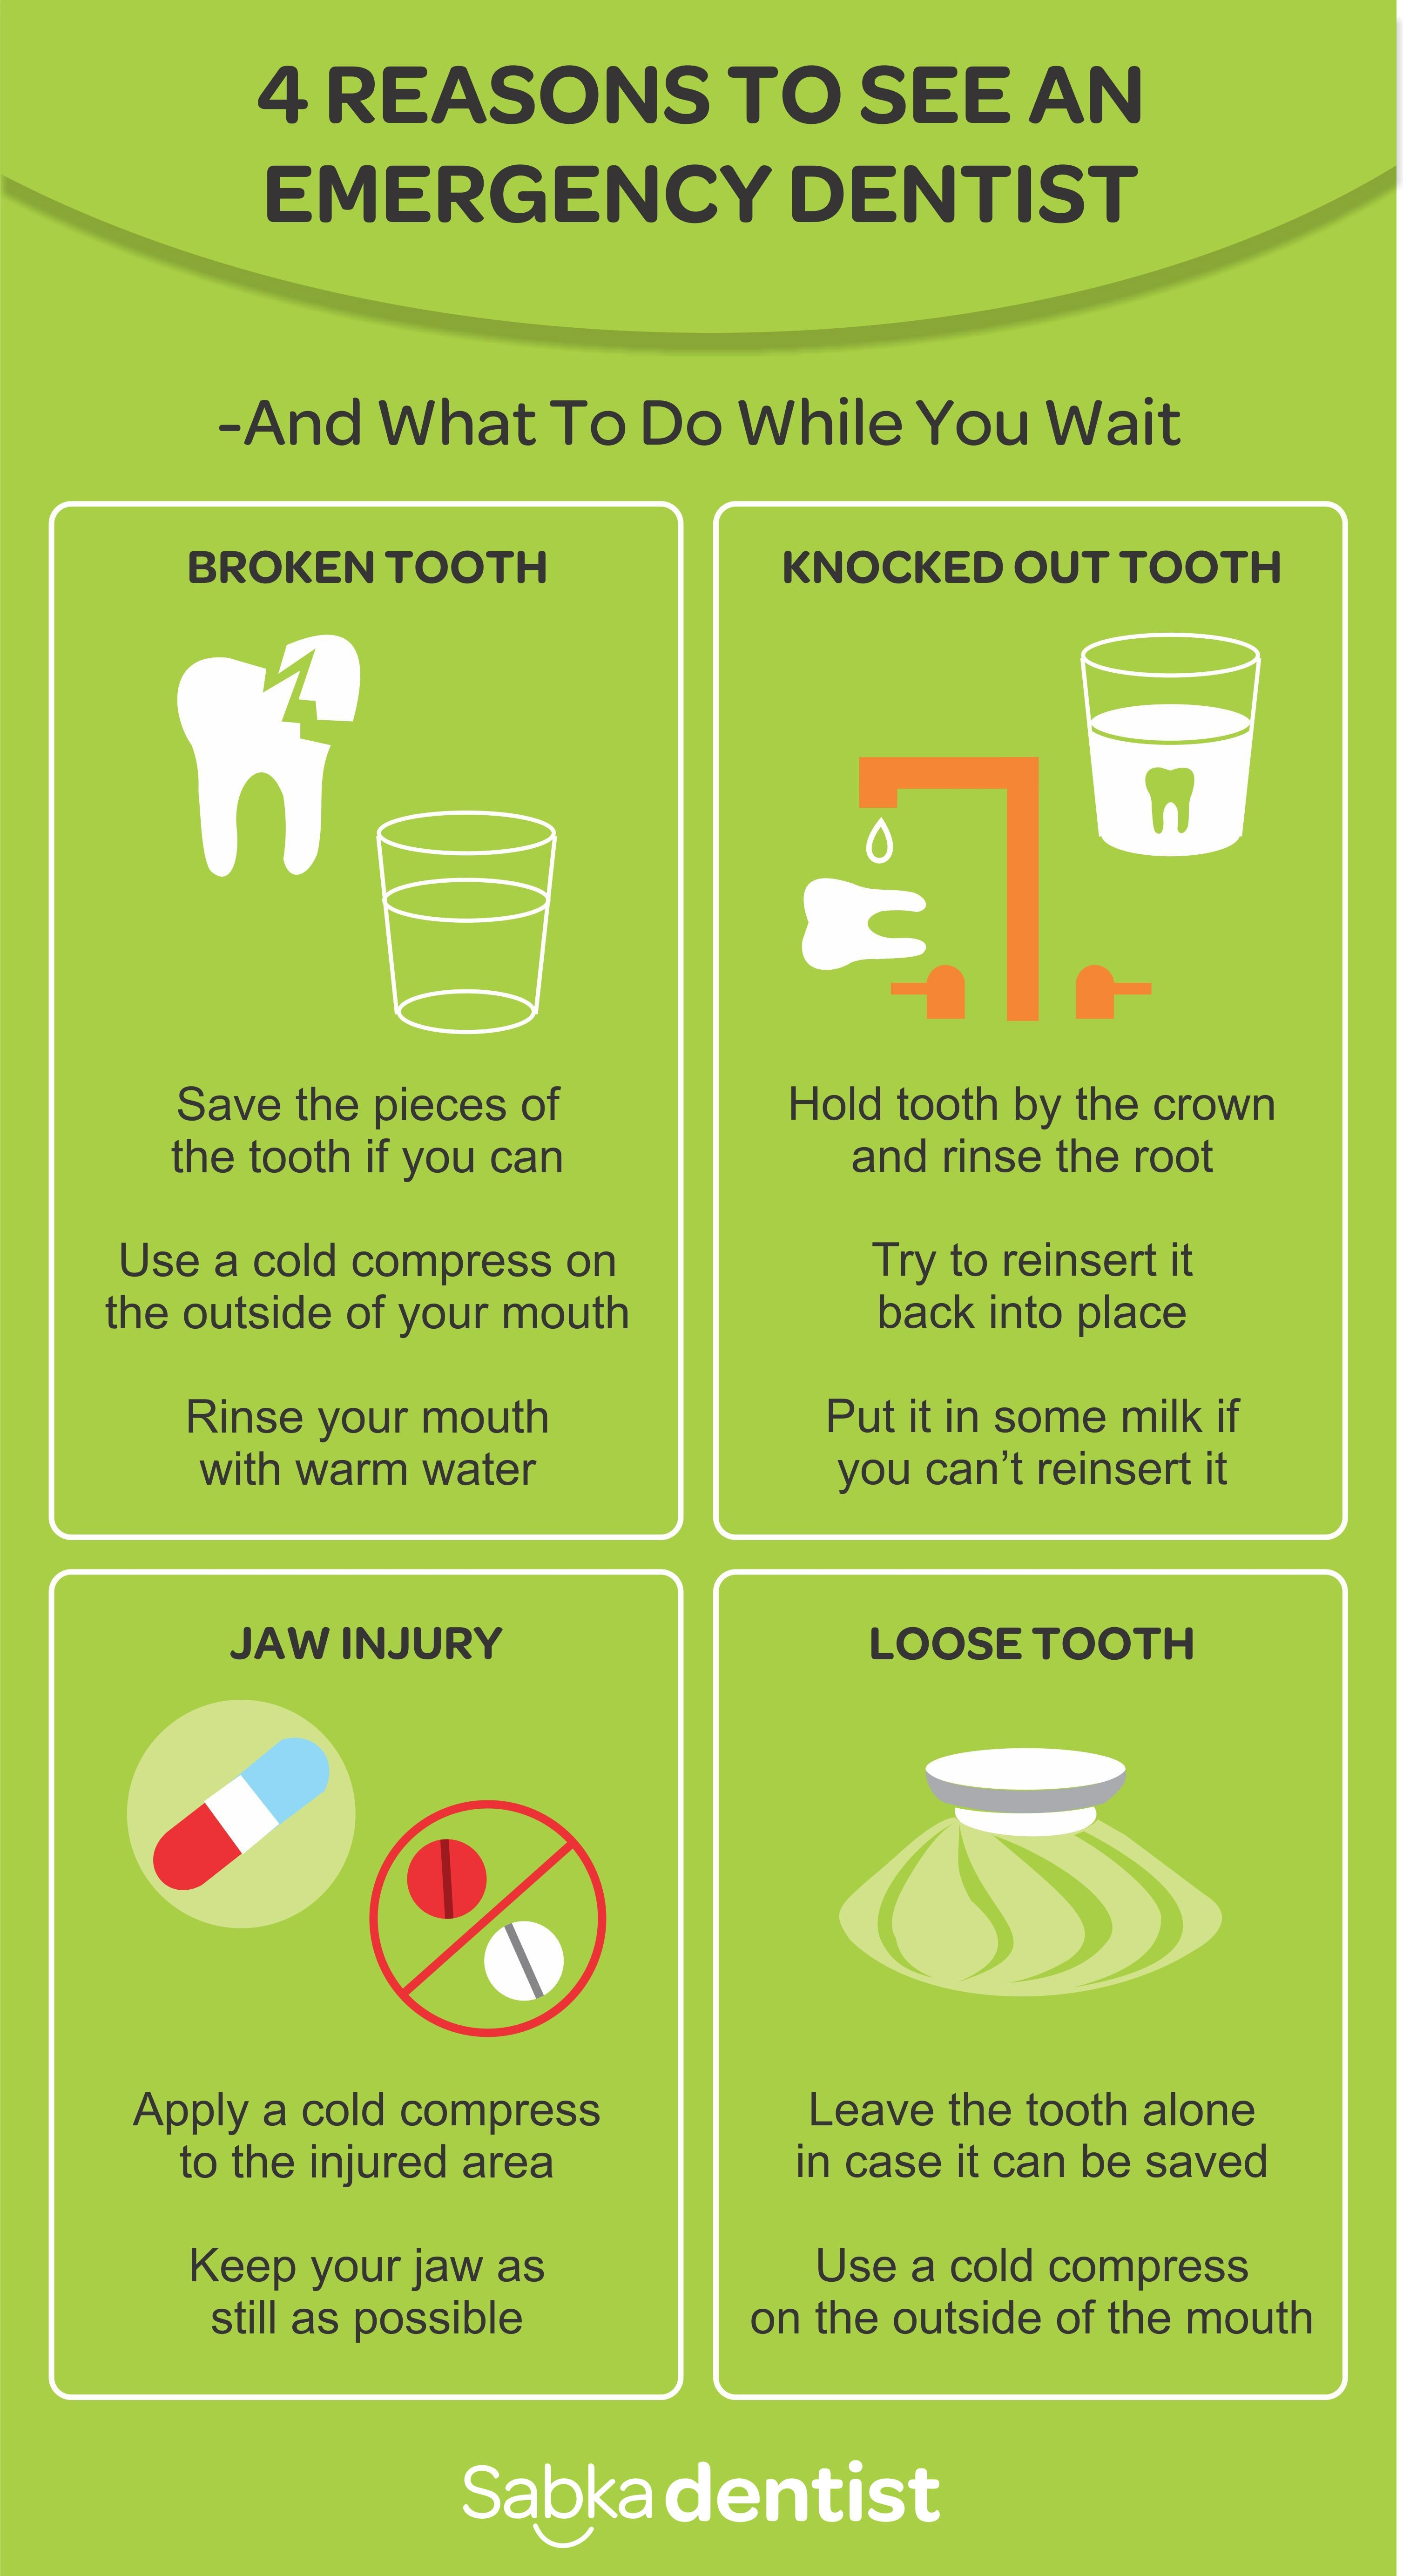 Reasons to see an emergency dentist and what to do while you wait.